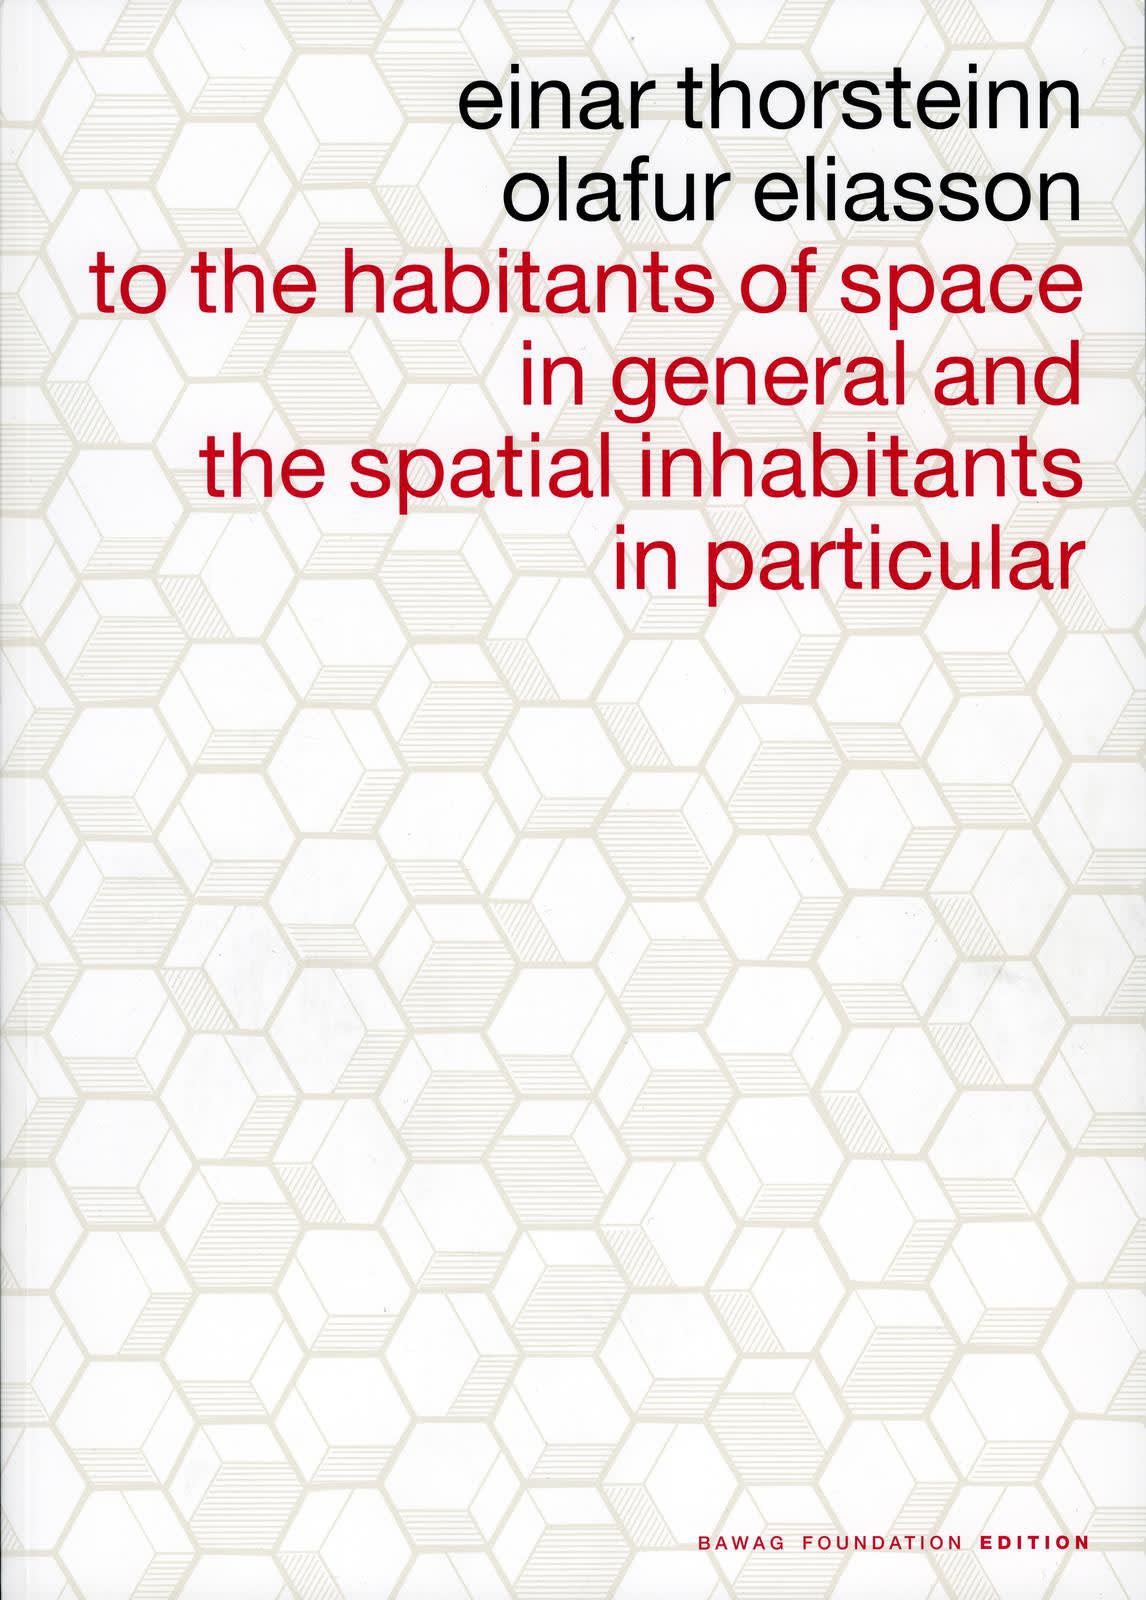 Olafur Eliasson: To the Habitants of Space in General and the Spatial Inhabitants in Particular